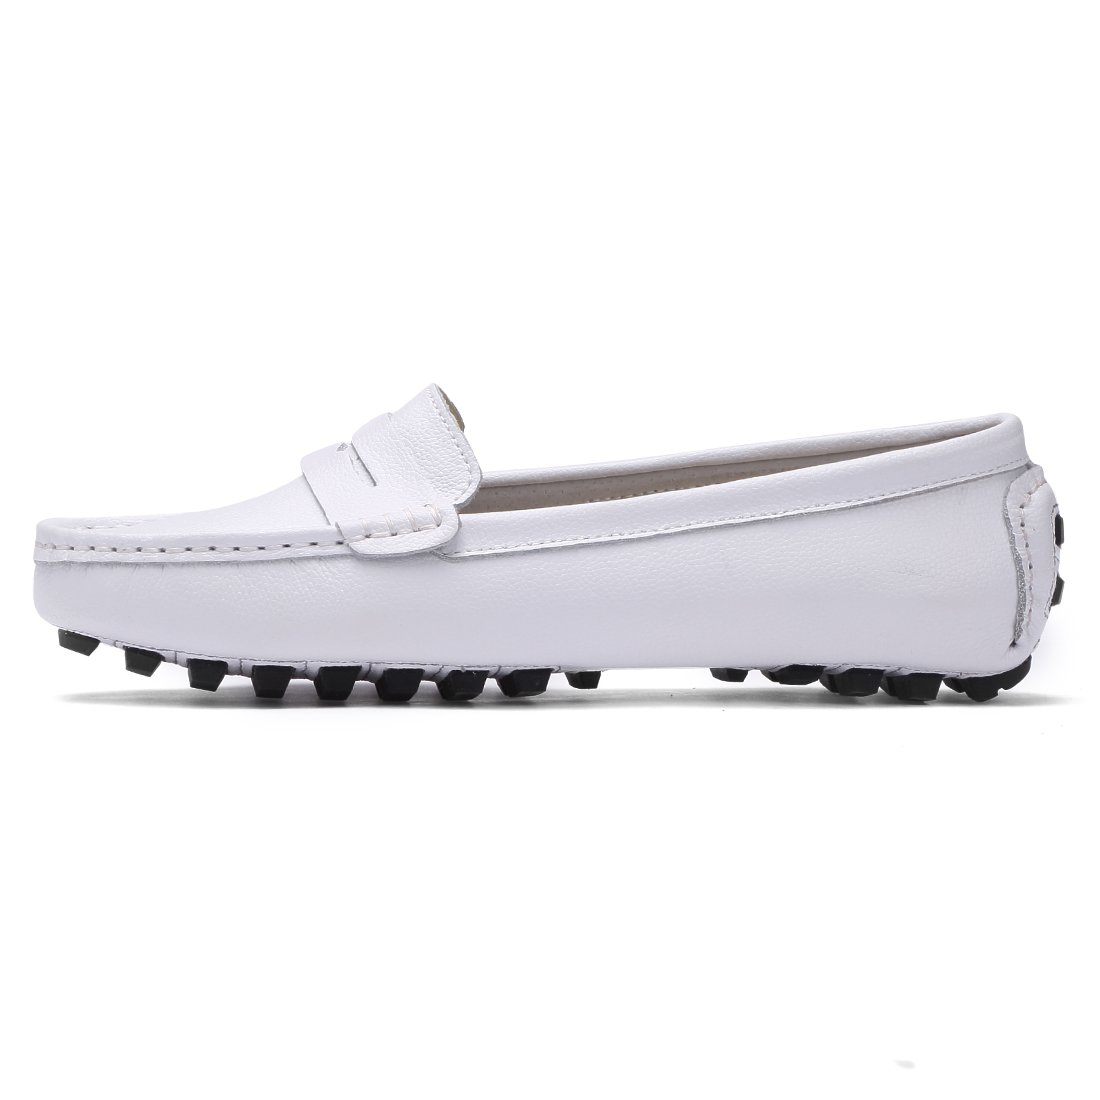 2214749a338 SUNROLAN Casual Womens Genuine Leather Penny Loafers Driving Moccasins  Slip-On Boat Flats Shoes 818 Christmas gift shop